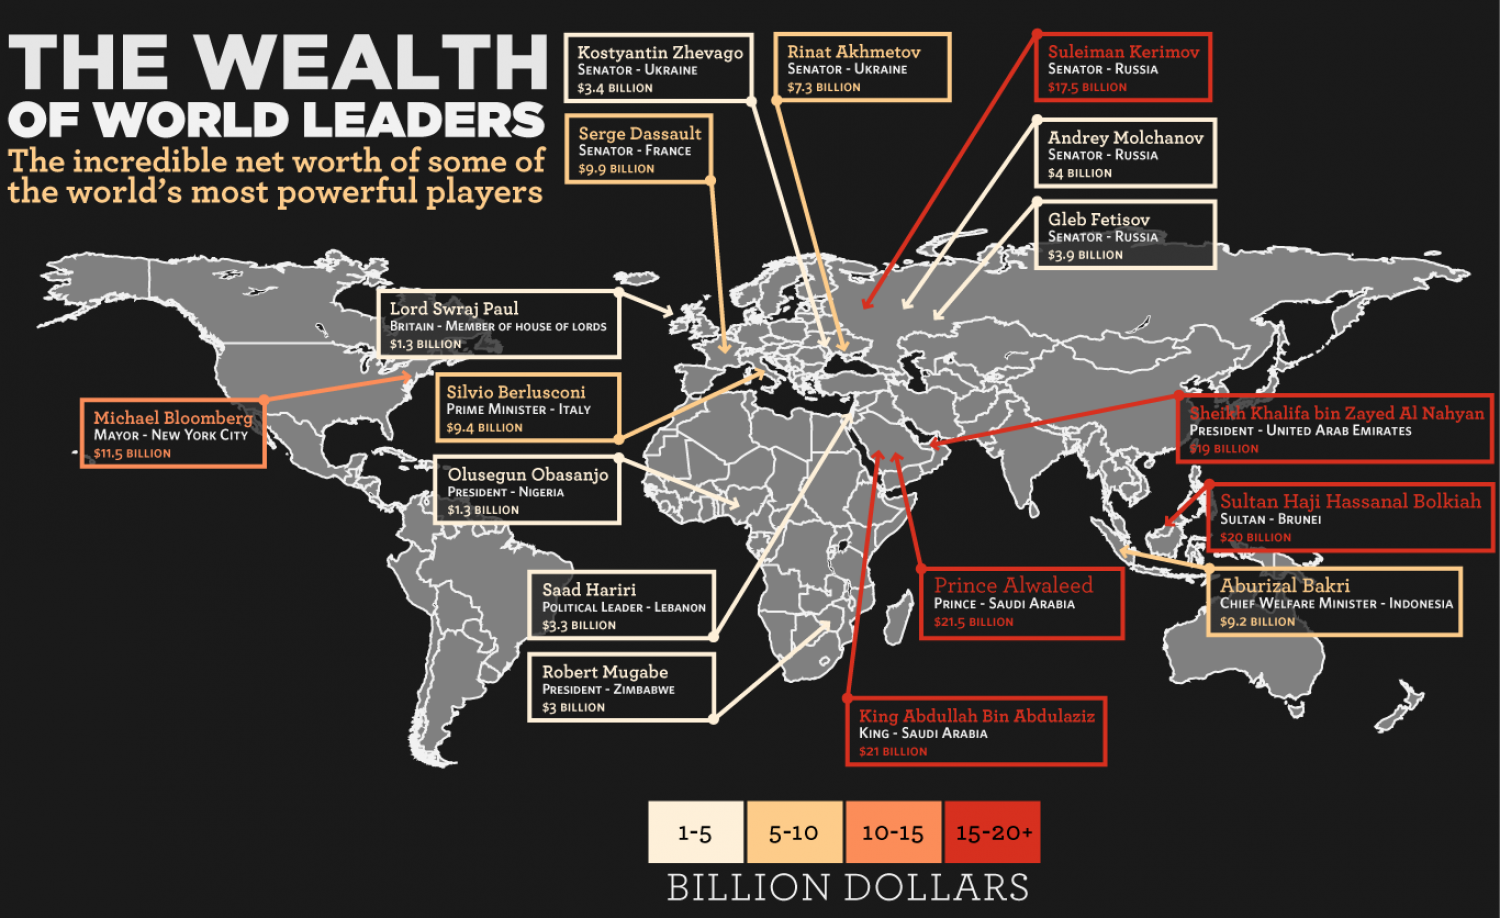 The Wealth of World Leaders Infographic